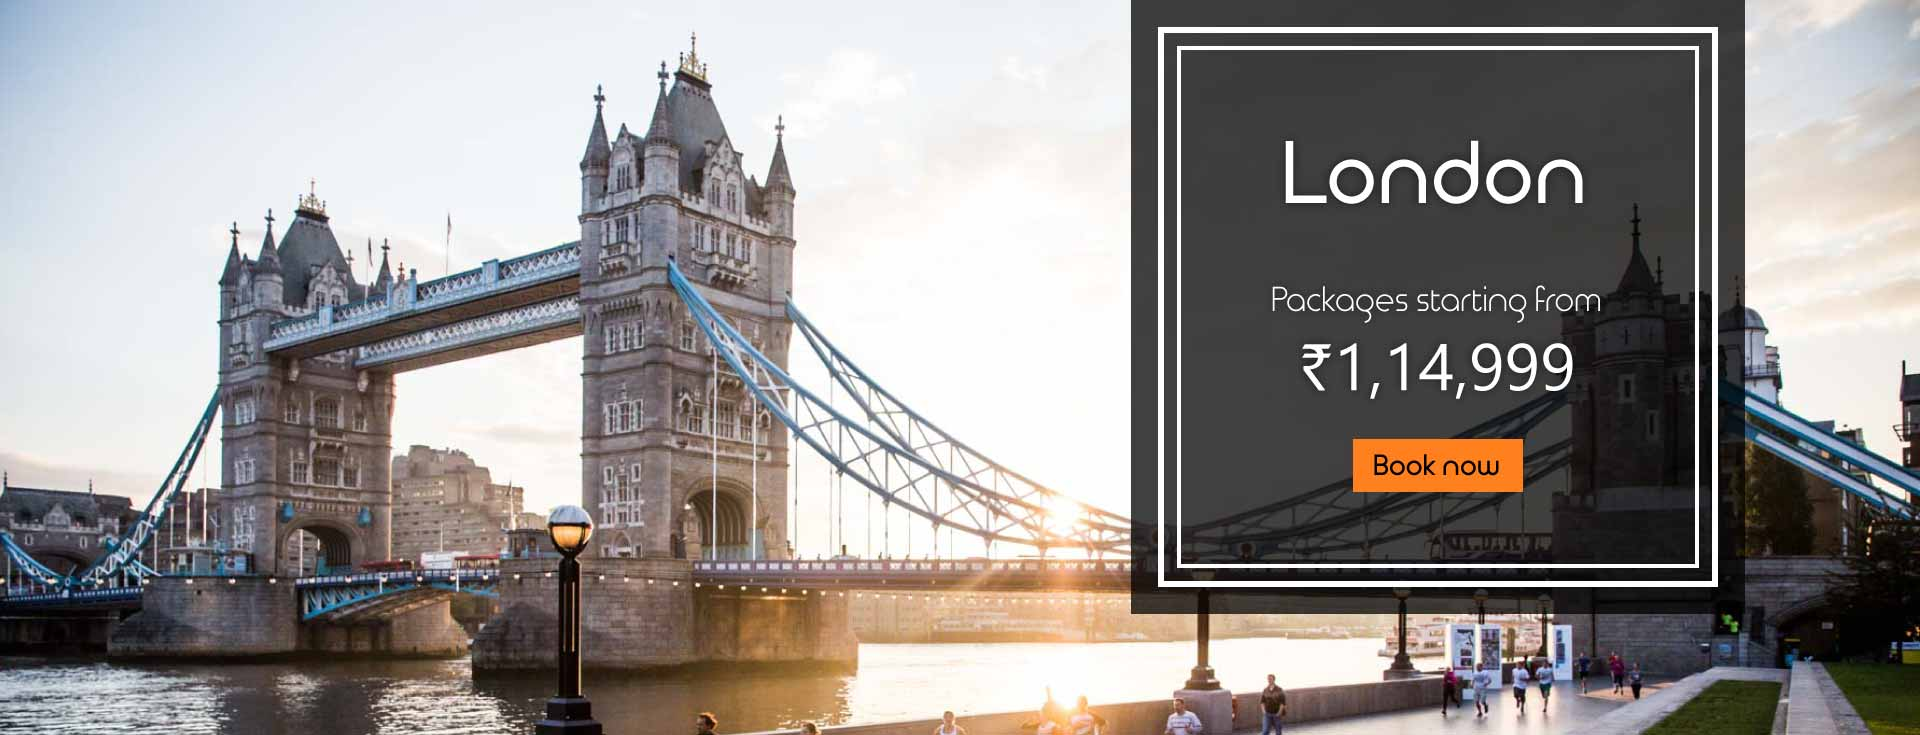 London Packages